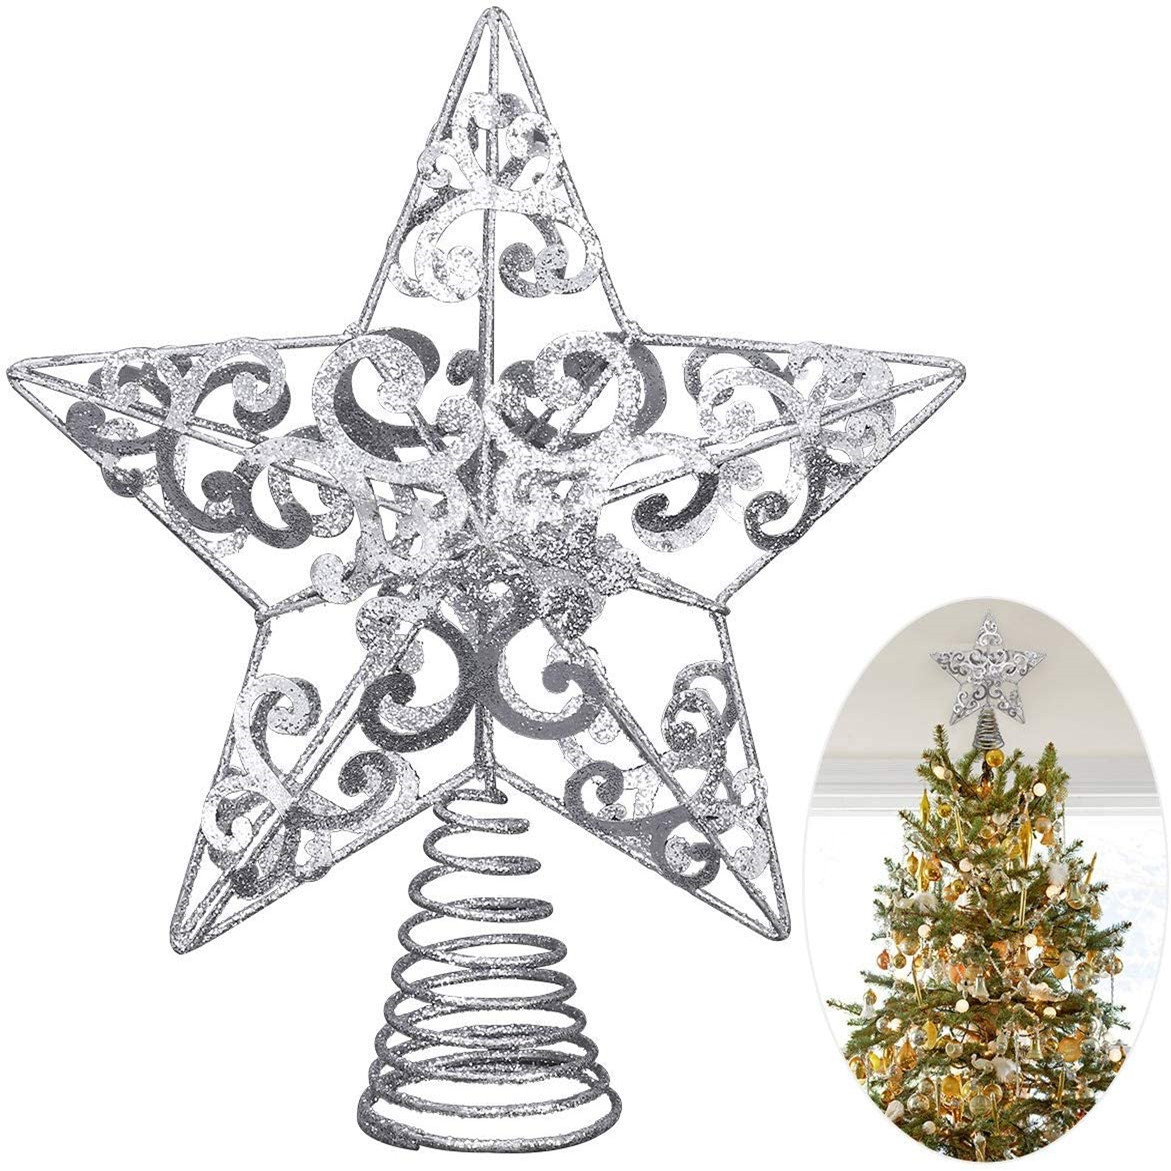 Christmas Tree Decor, Glittered Metal Hollow Star Tree Topper Unique Design Christmas Decoration